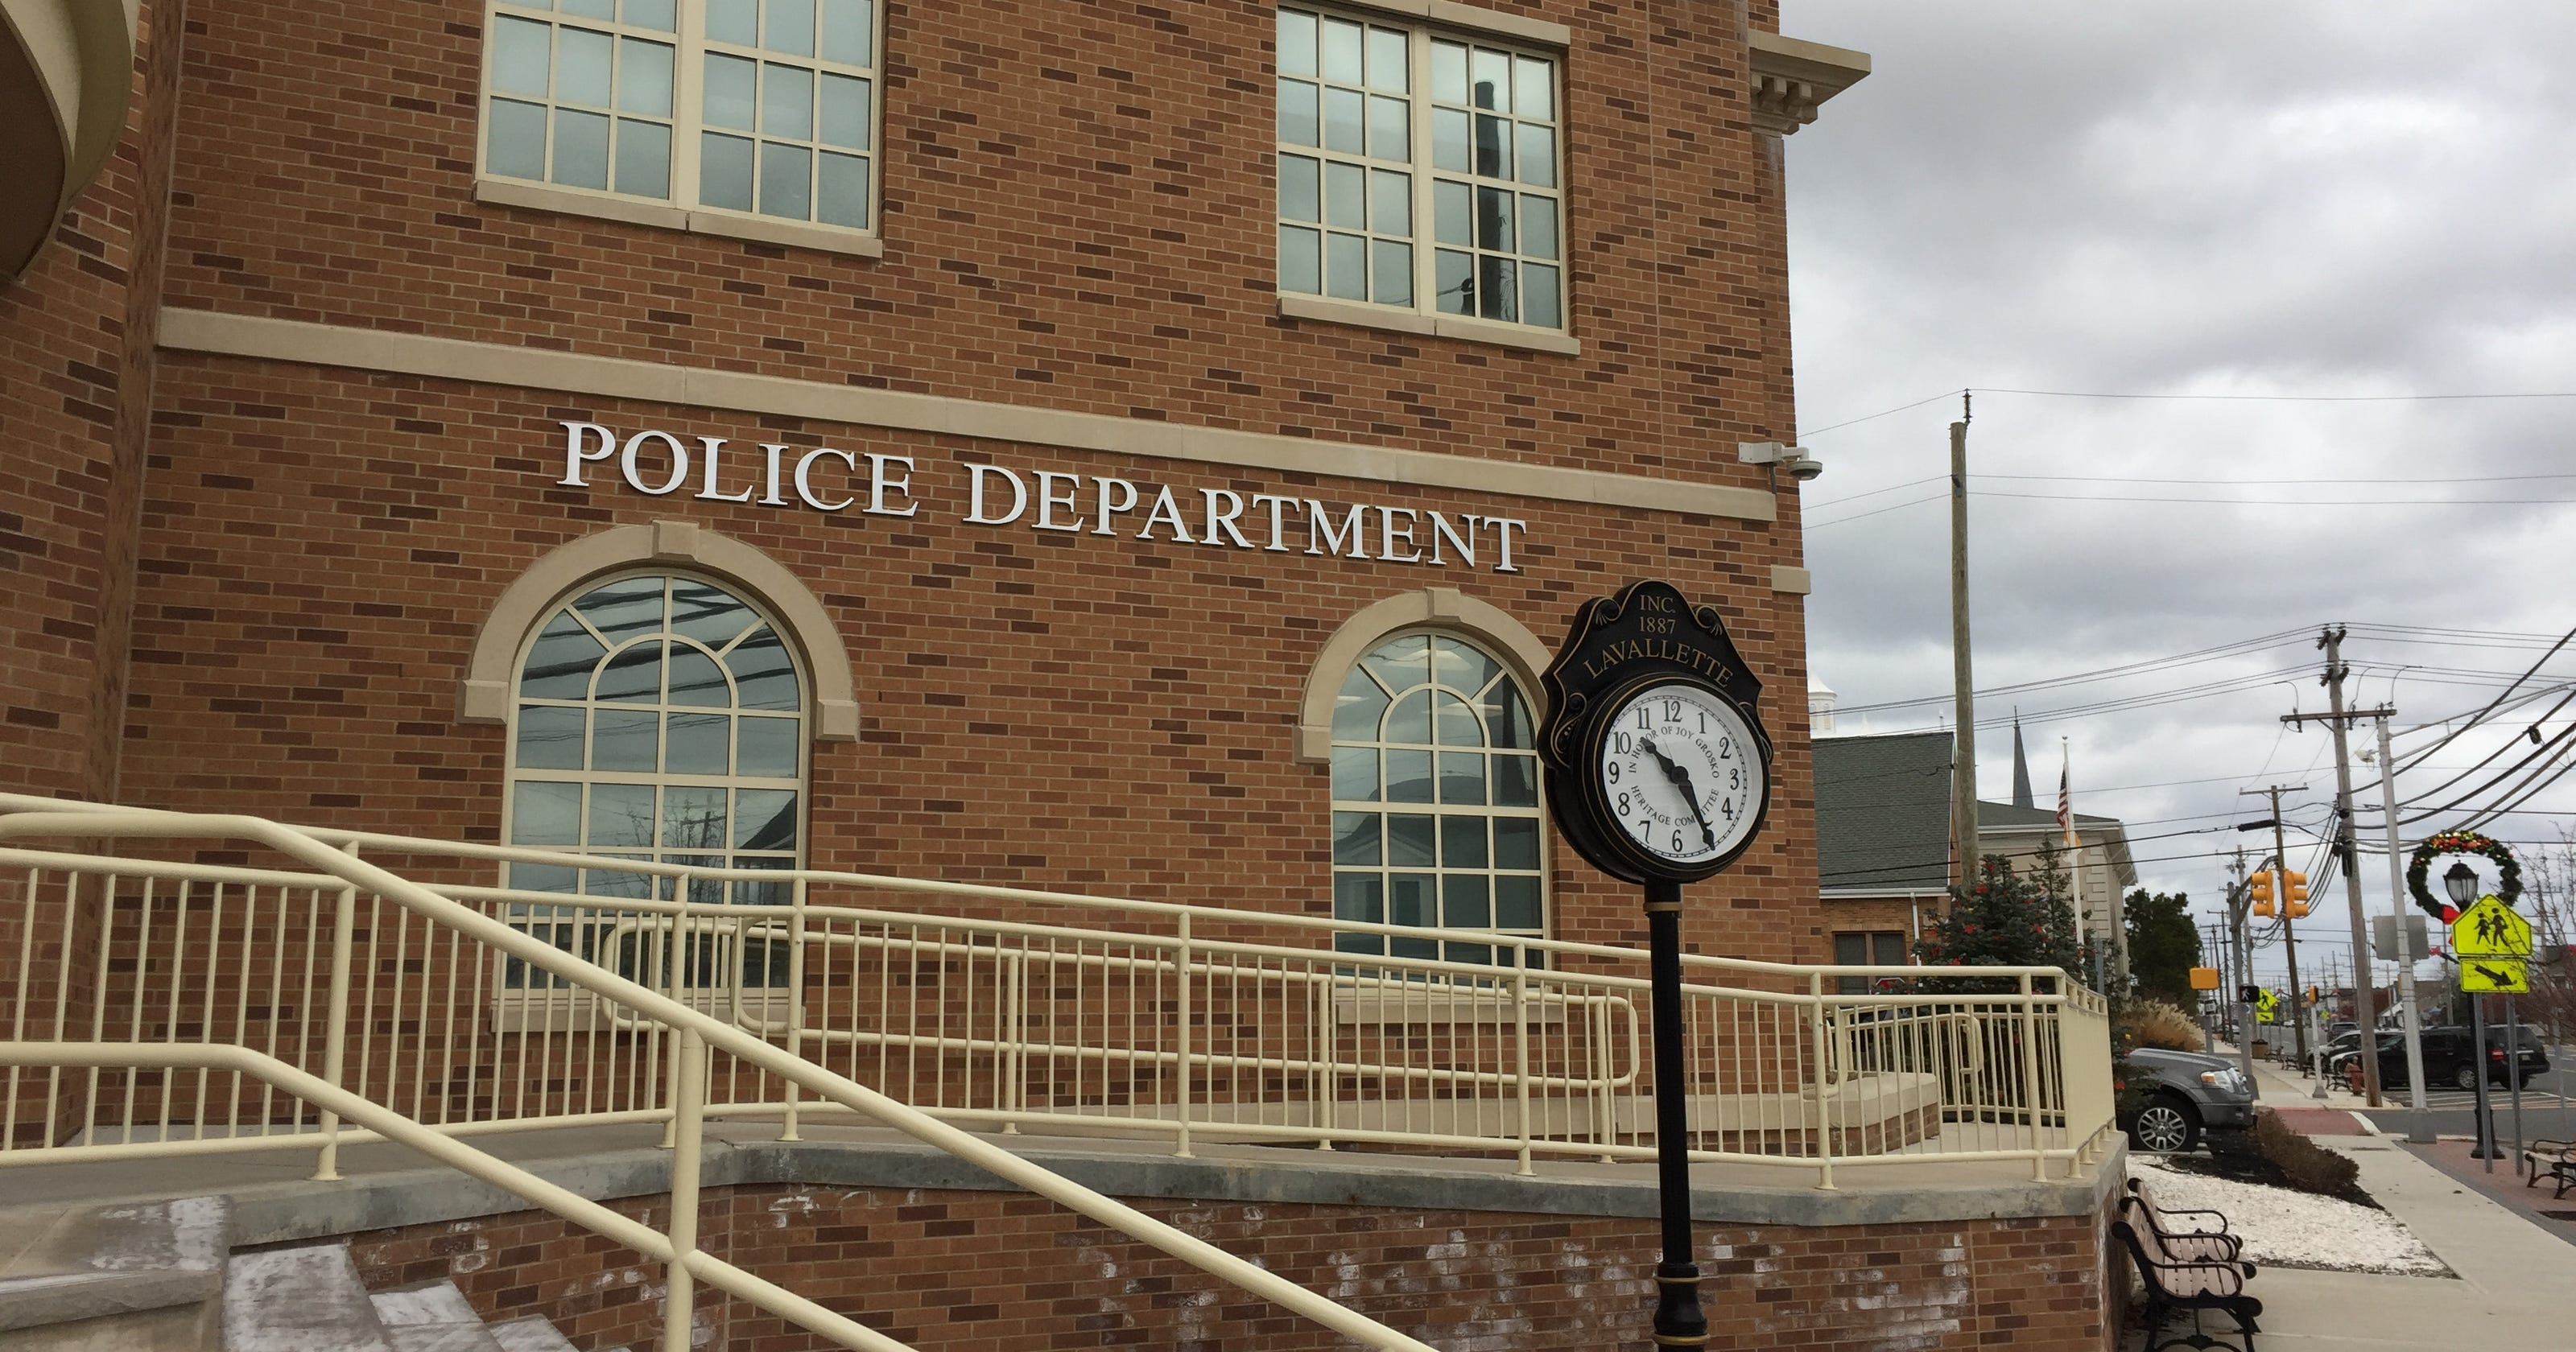 Lavallette police sergeant charged with assault in Toms River